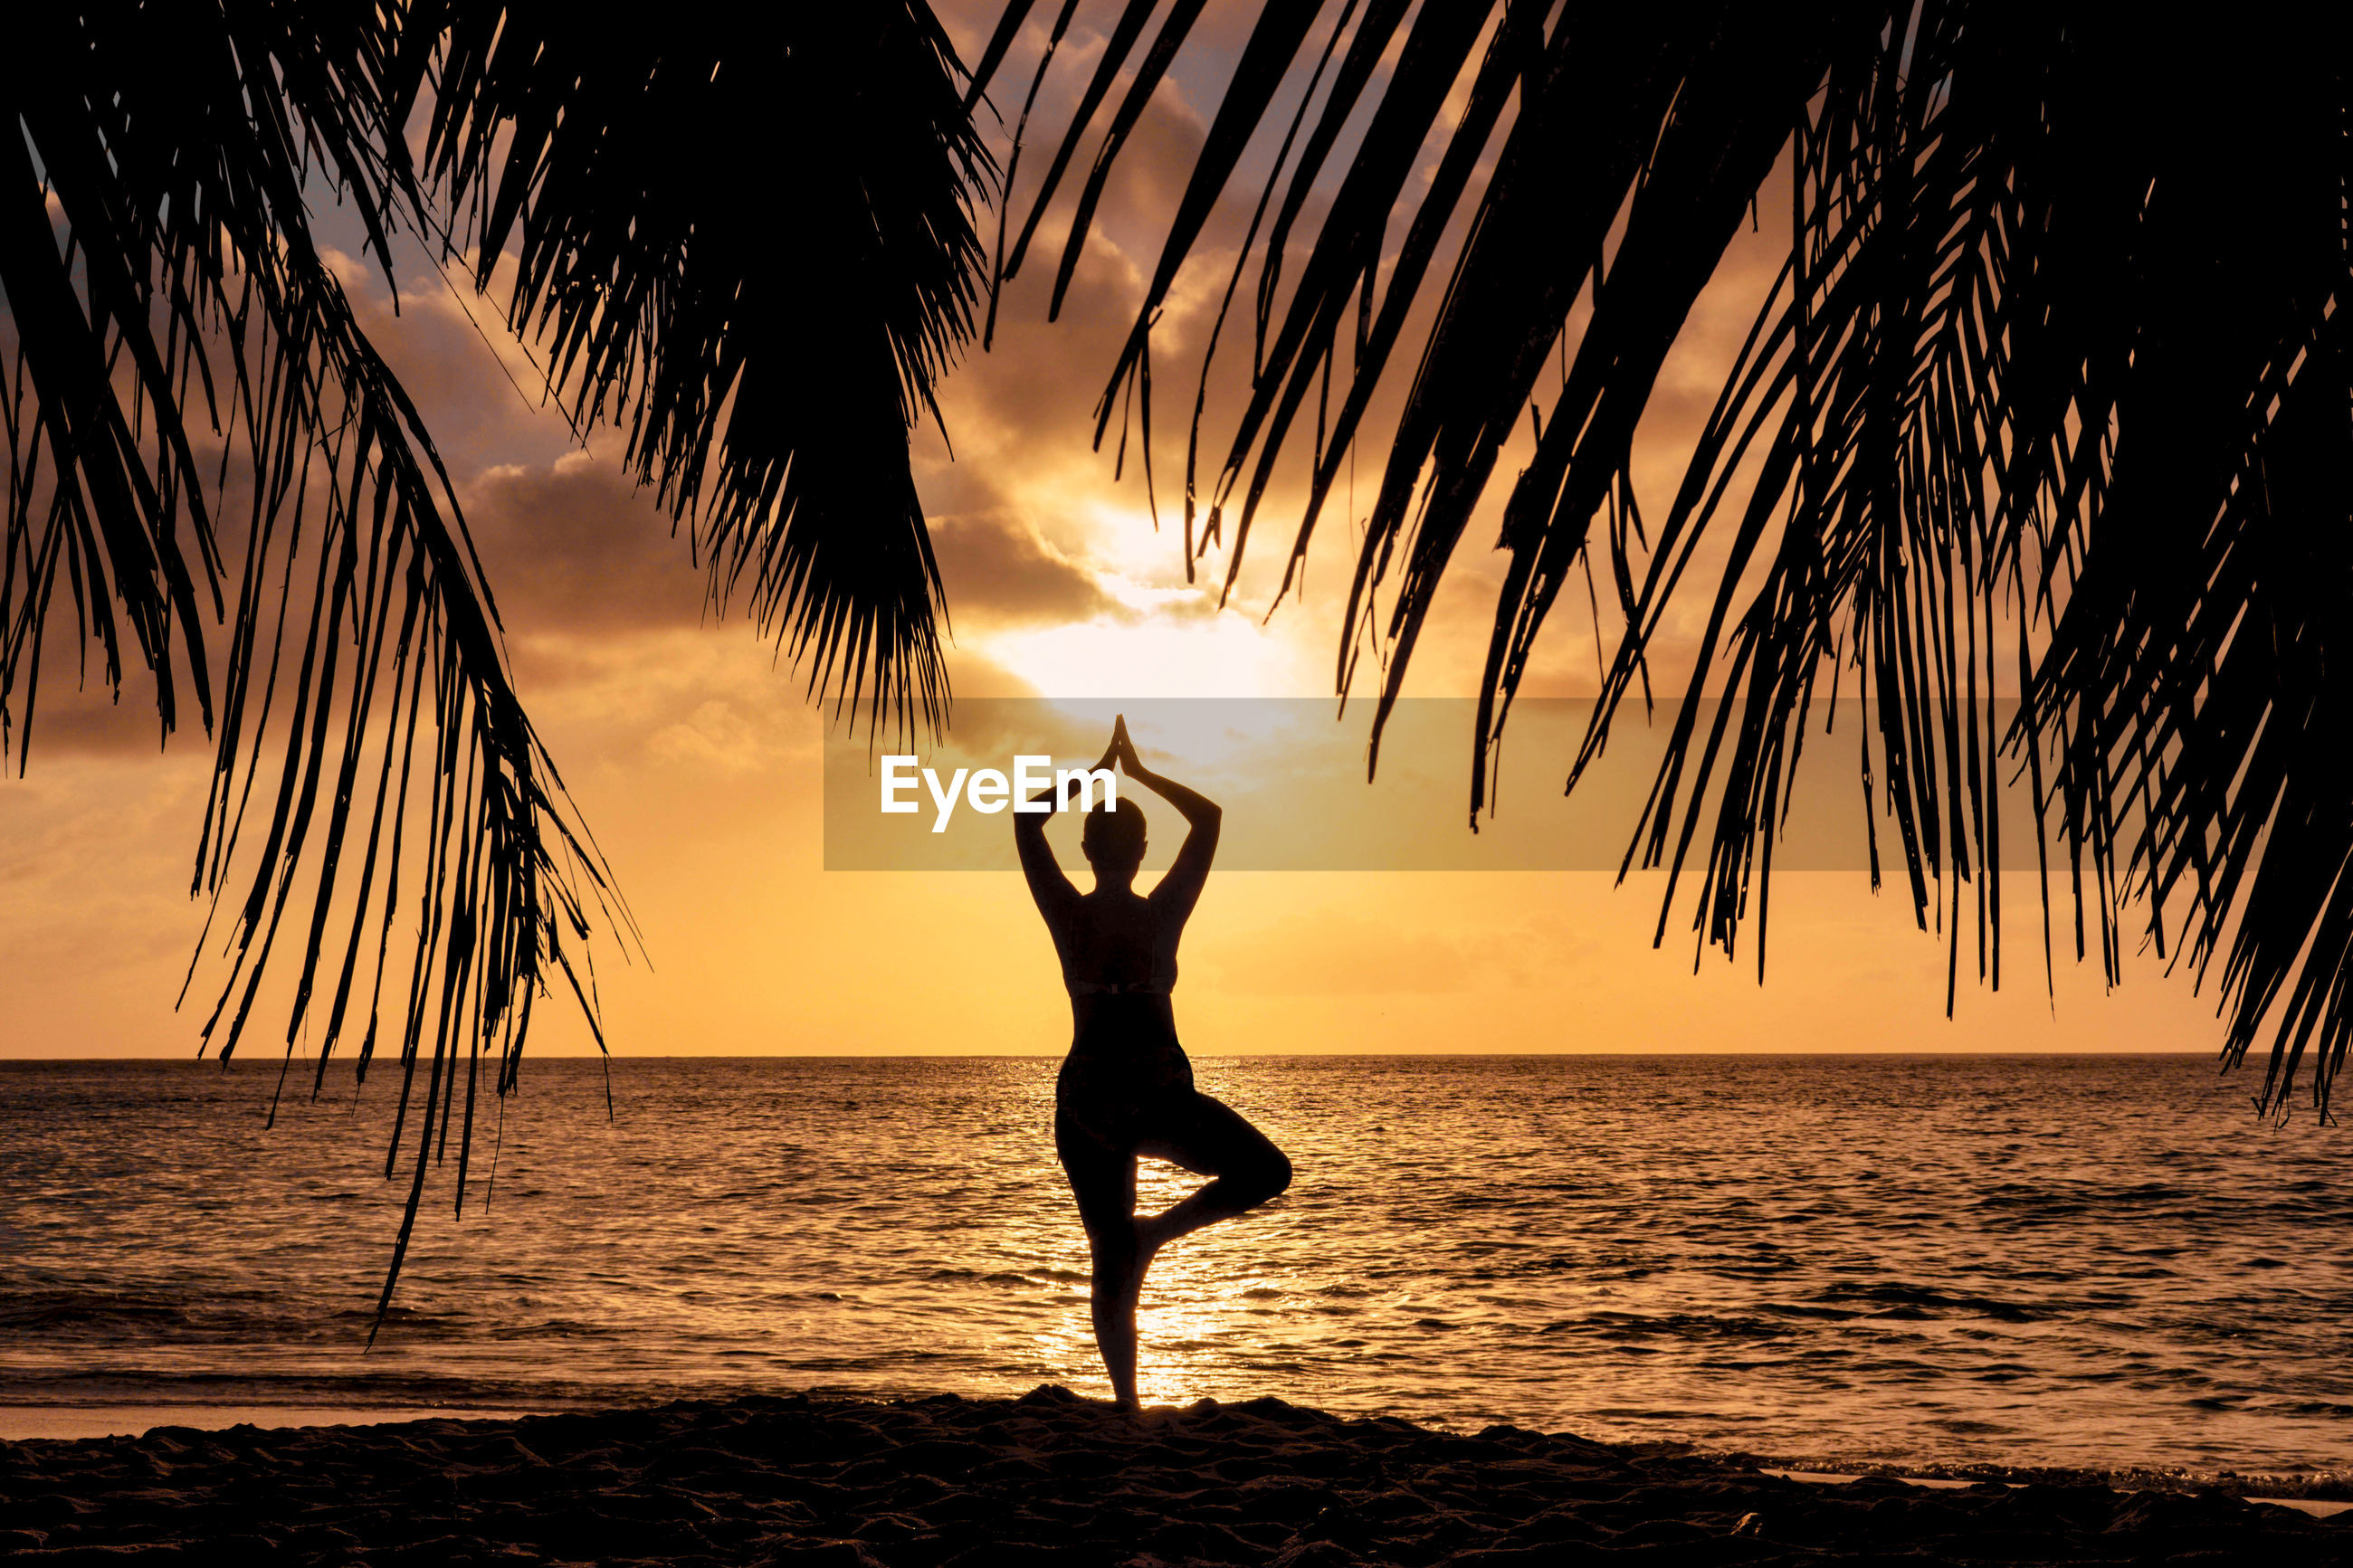 Sunset silhouette of a woman doing yoga on beach.